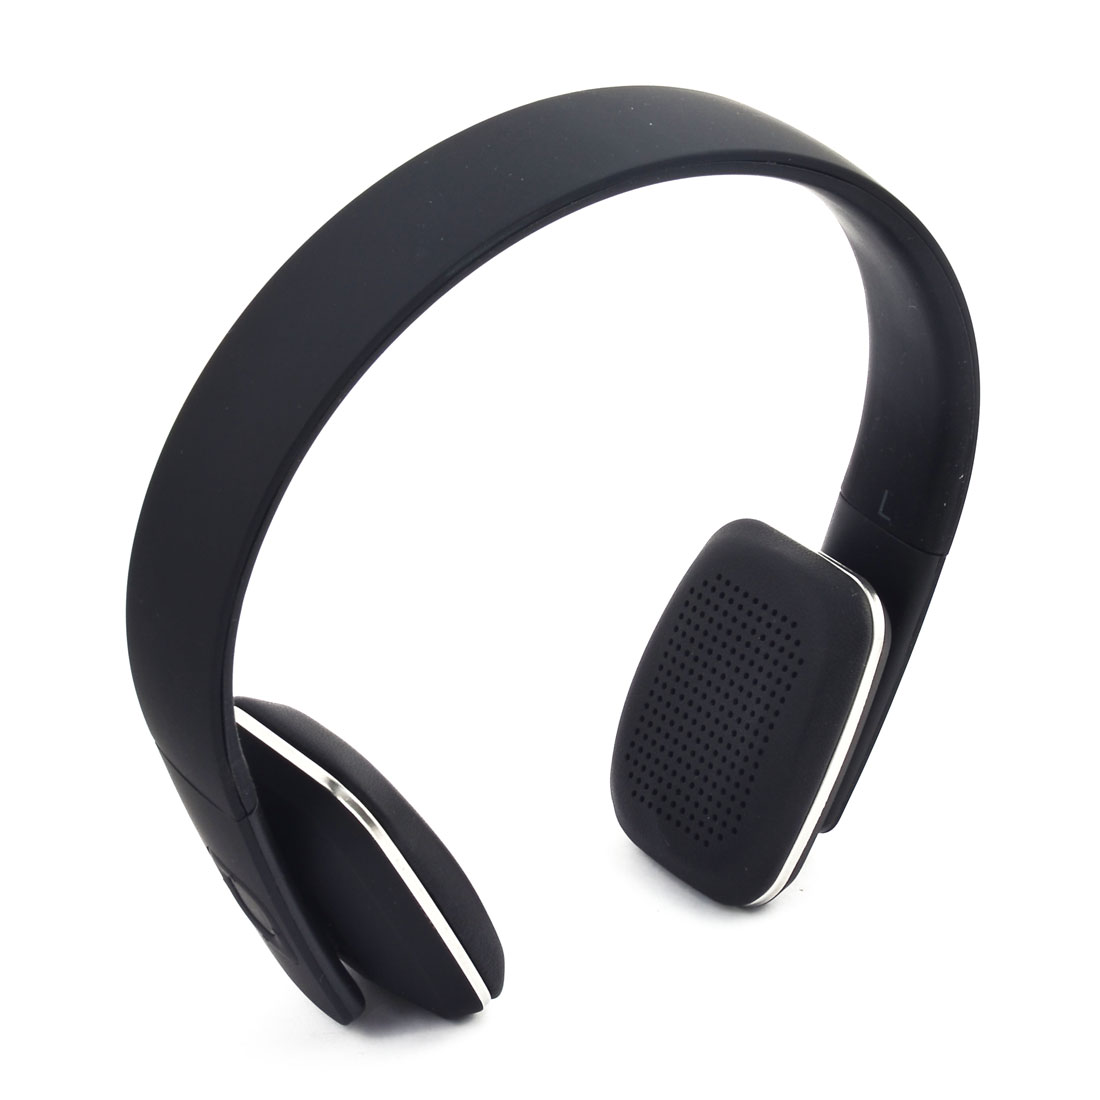 PC Tablet Noise Reduction Stereo Wireless bluetooth Headphones Headset Black w USB Cable